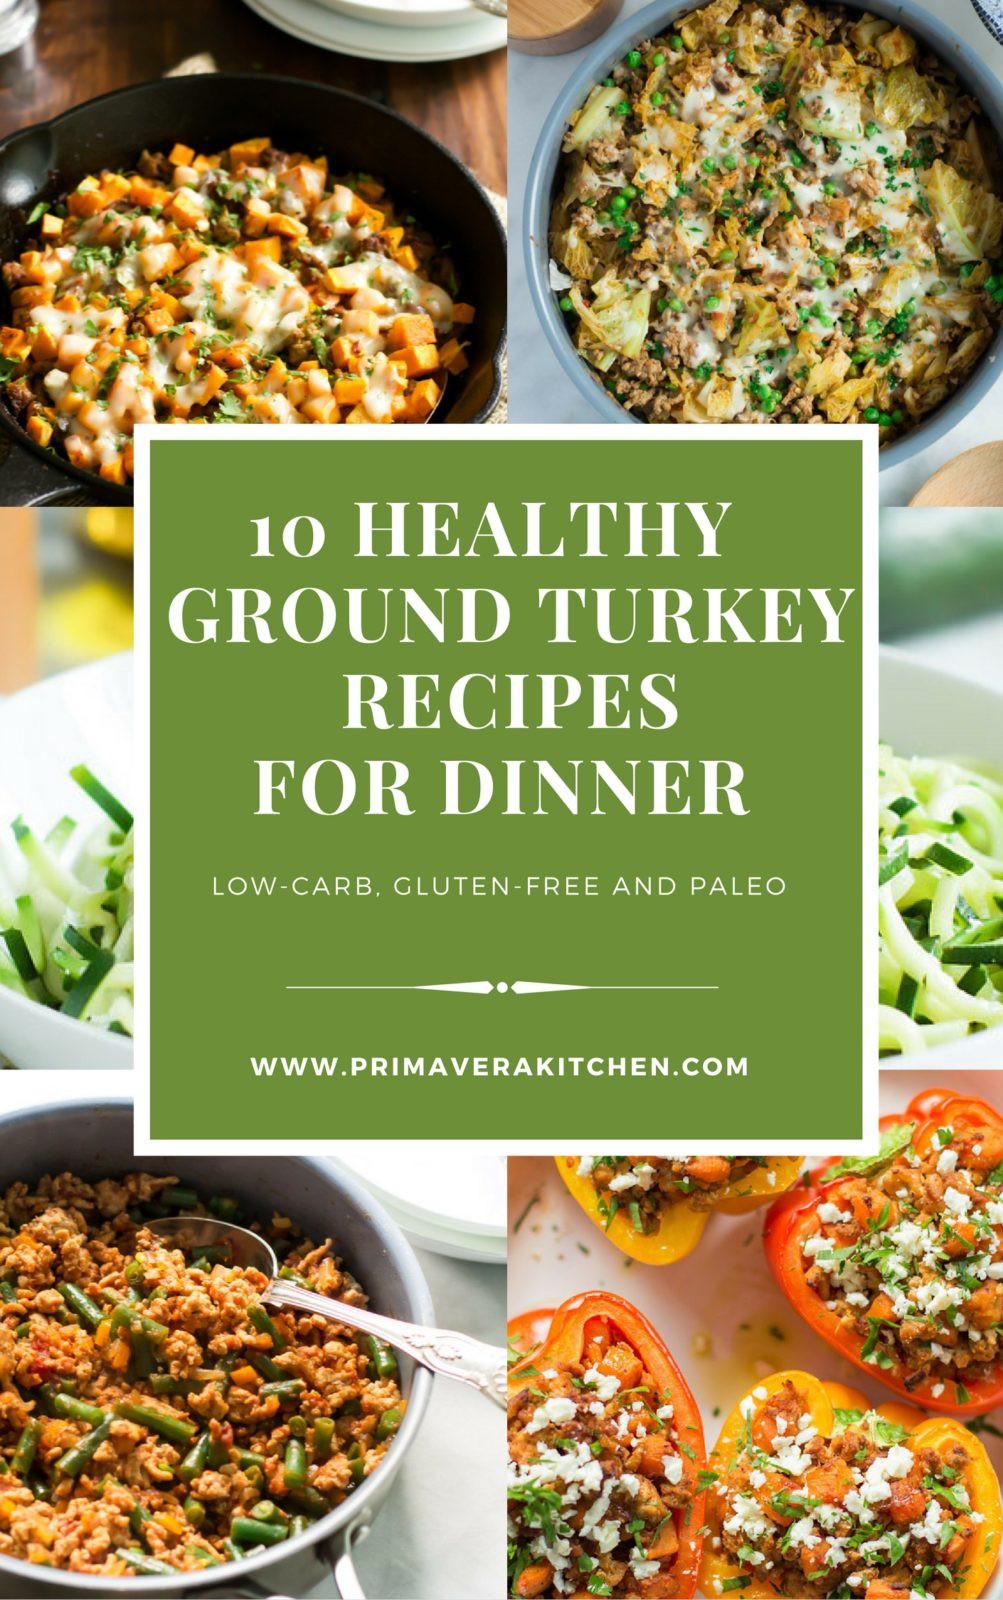 Ground Turkey Recipes Healthy  10 Healthy Ground Turkey Recipes for Dinner Primavera